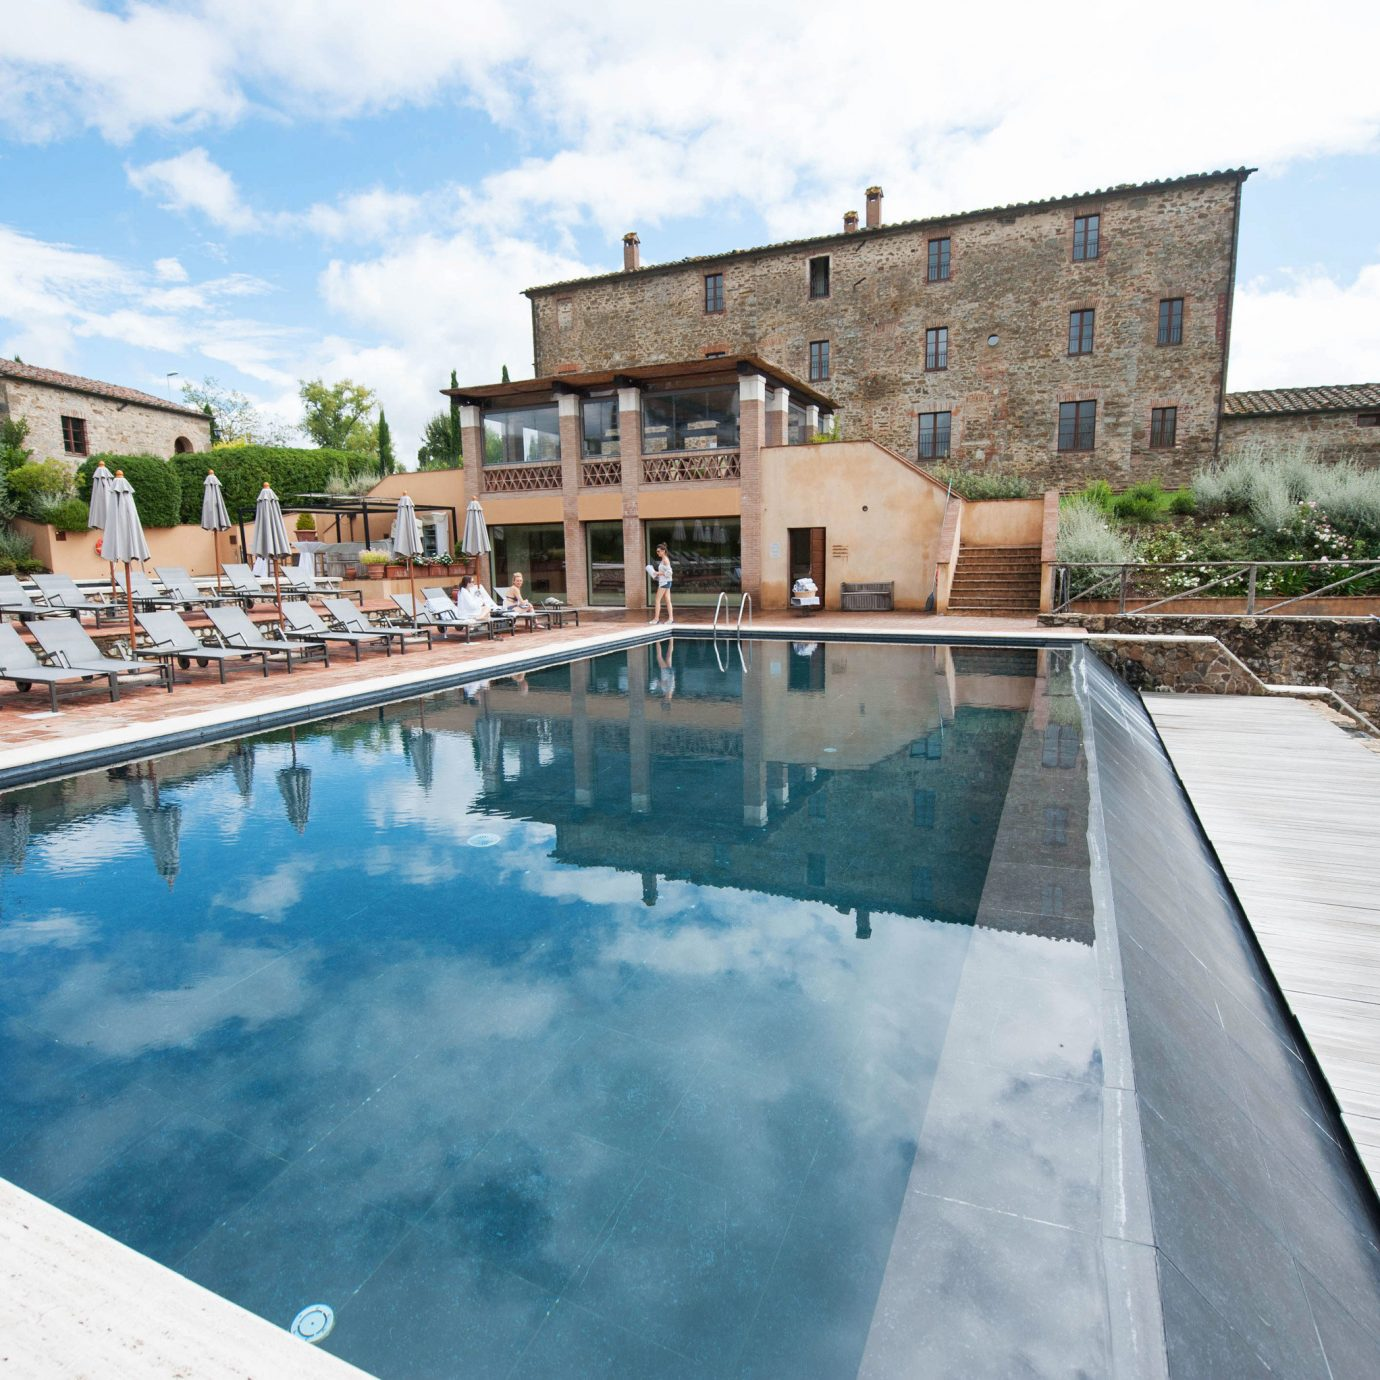 Hotels Italy Romance sky swimming pool property house reflecting pool Villa backyard waterway Resort